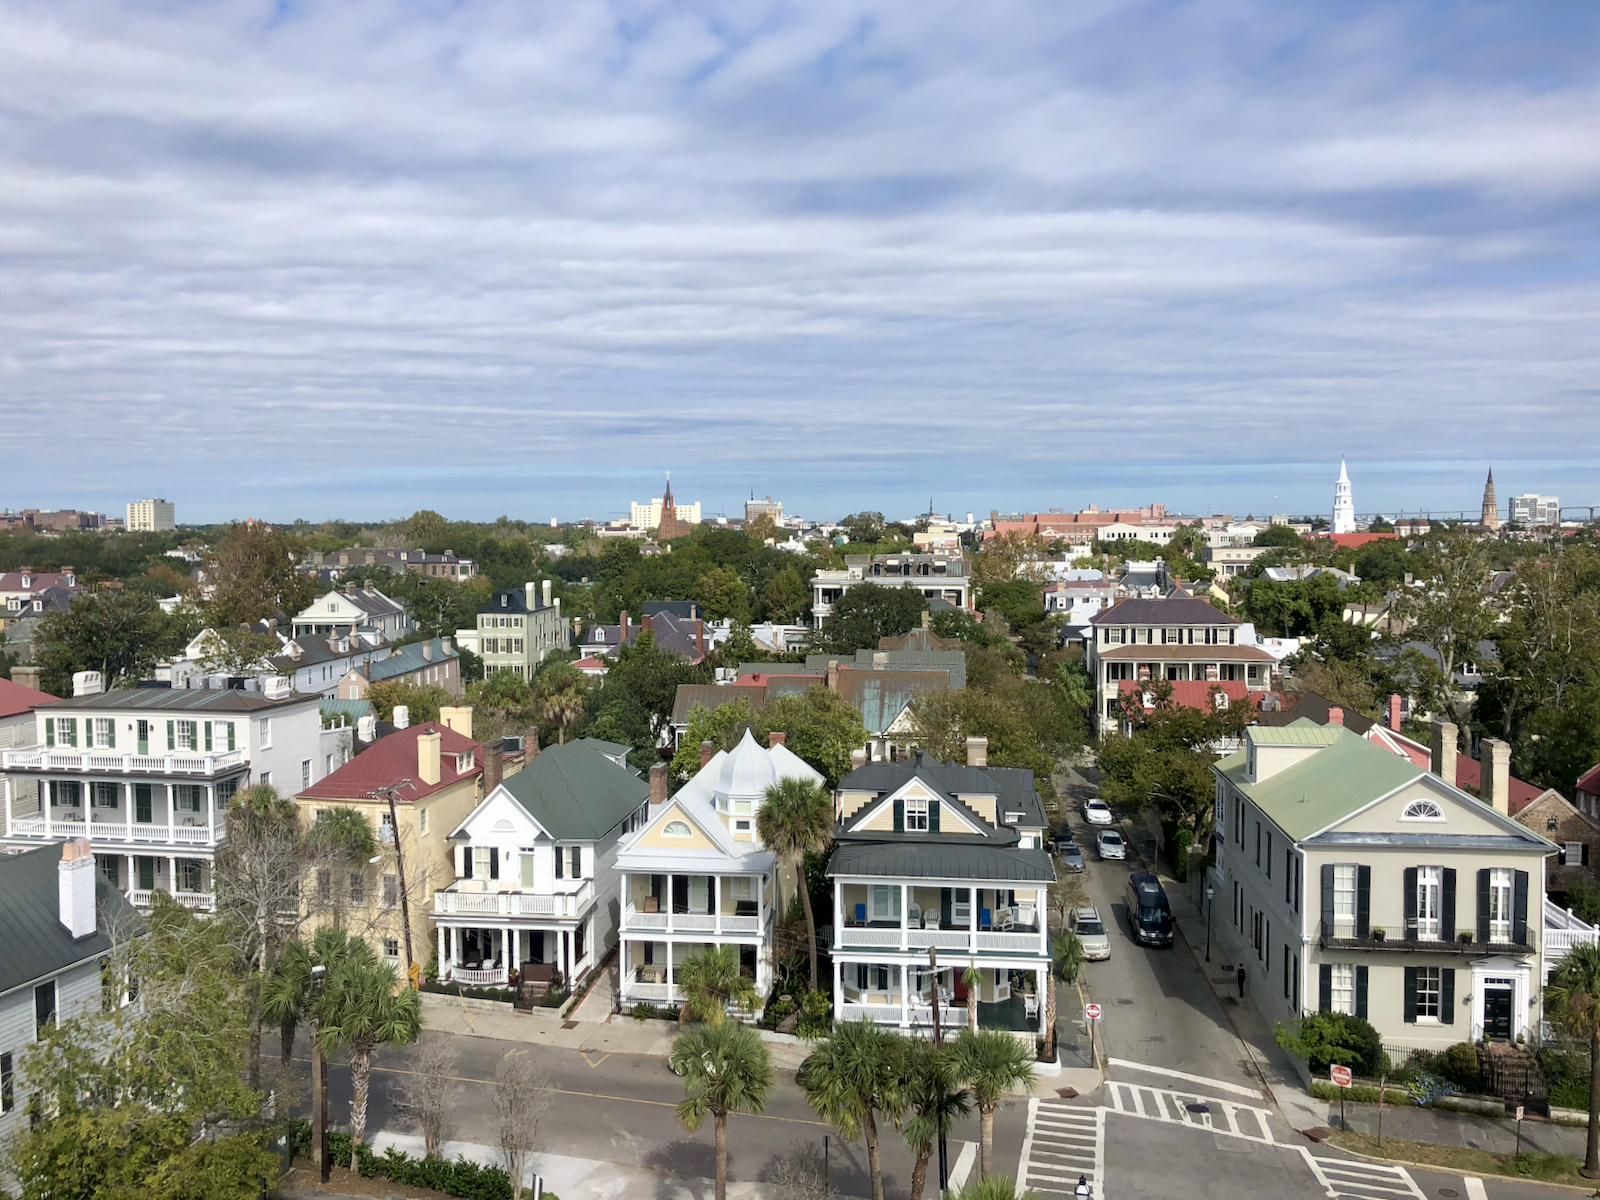 An aerial view of homes on South Battery Street in Charleston